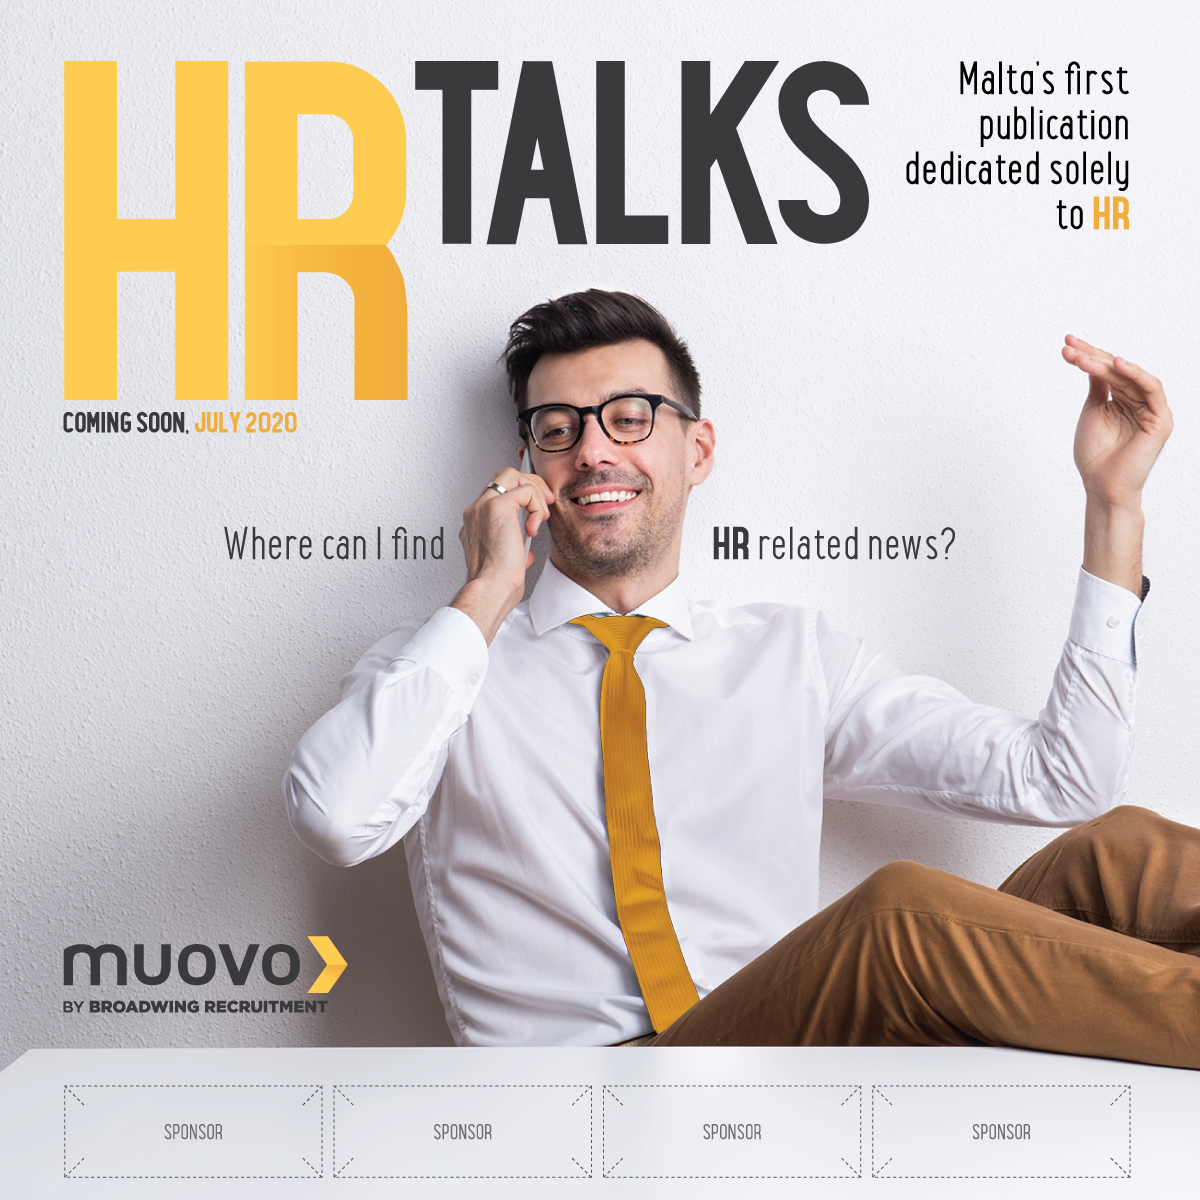 HR Talks - Malta HR & Recruitment News & Resources